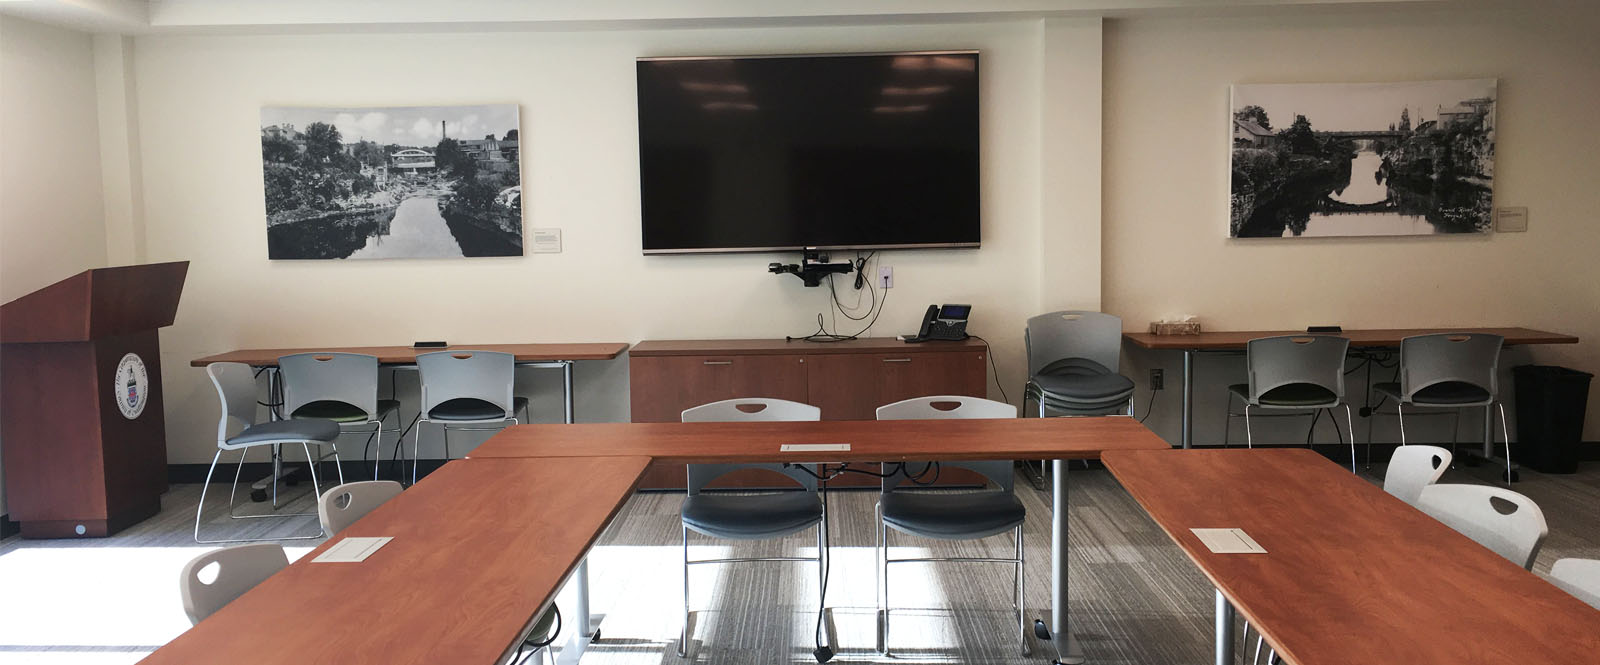 Meeting room with tables, chairs, and a TV